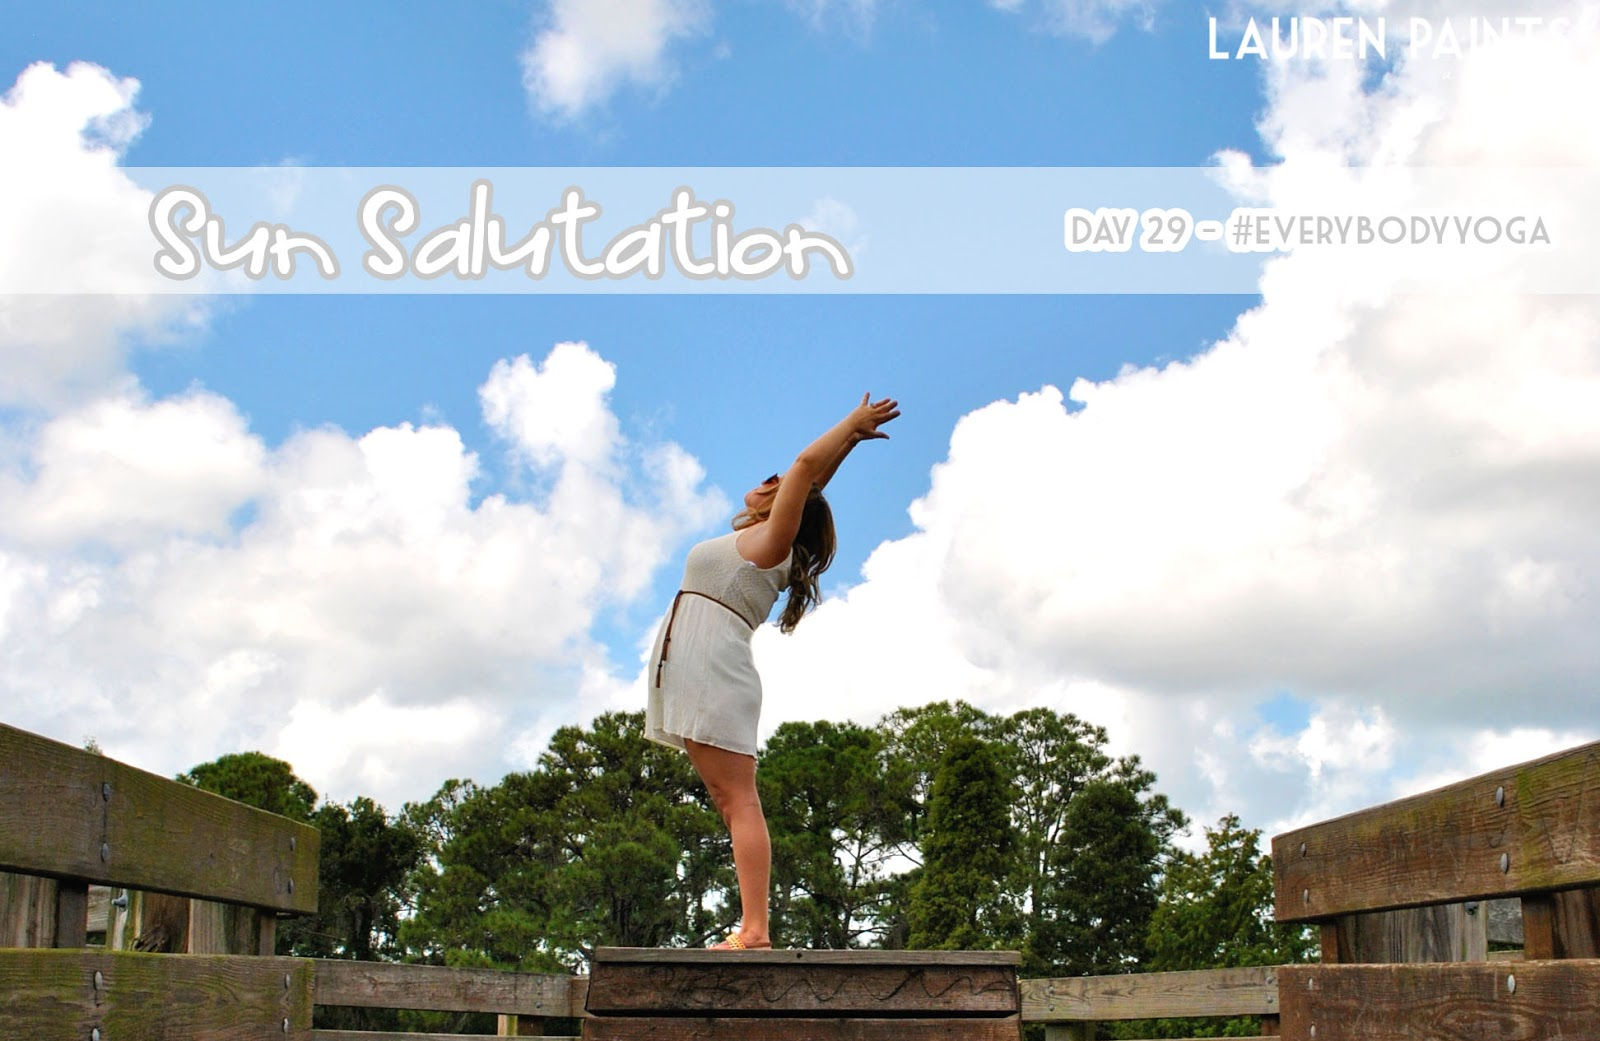 #EveryBodyYoga Day 29 - Sun Salutation or Upward Salute